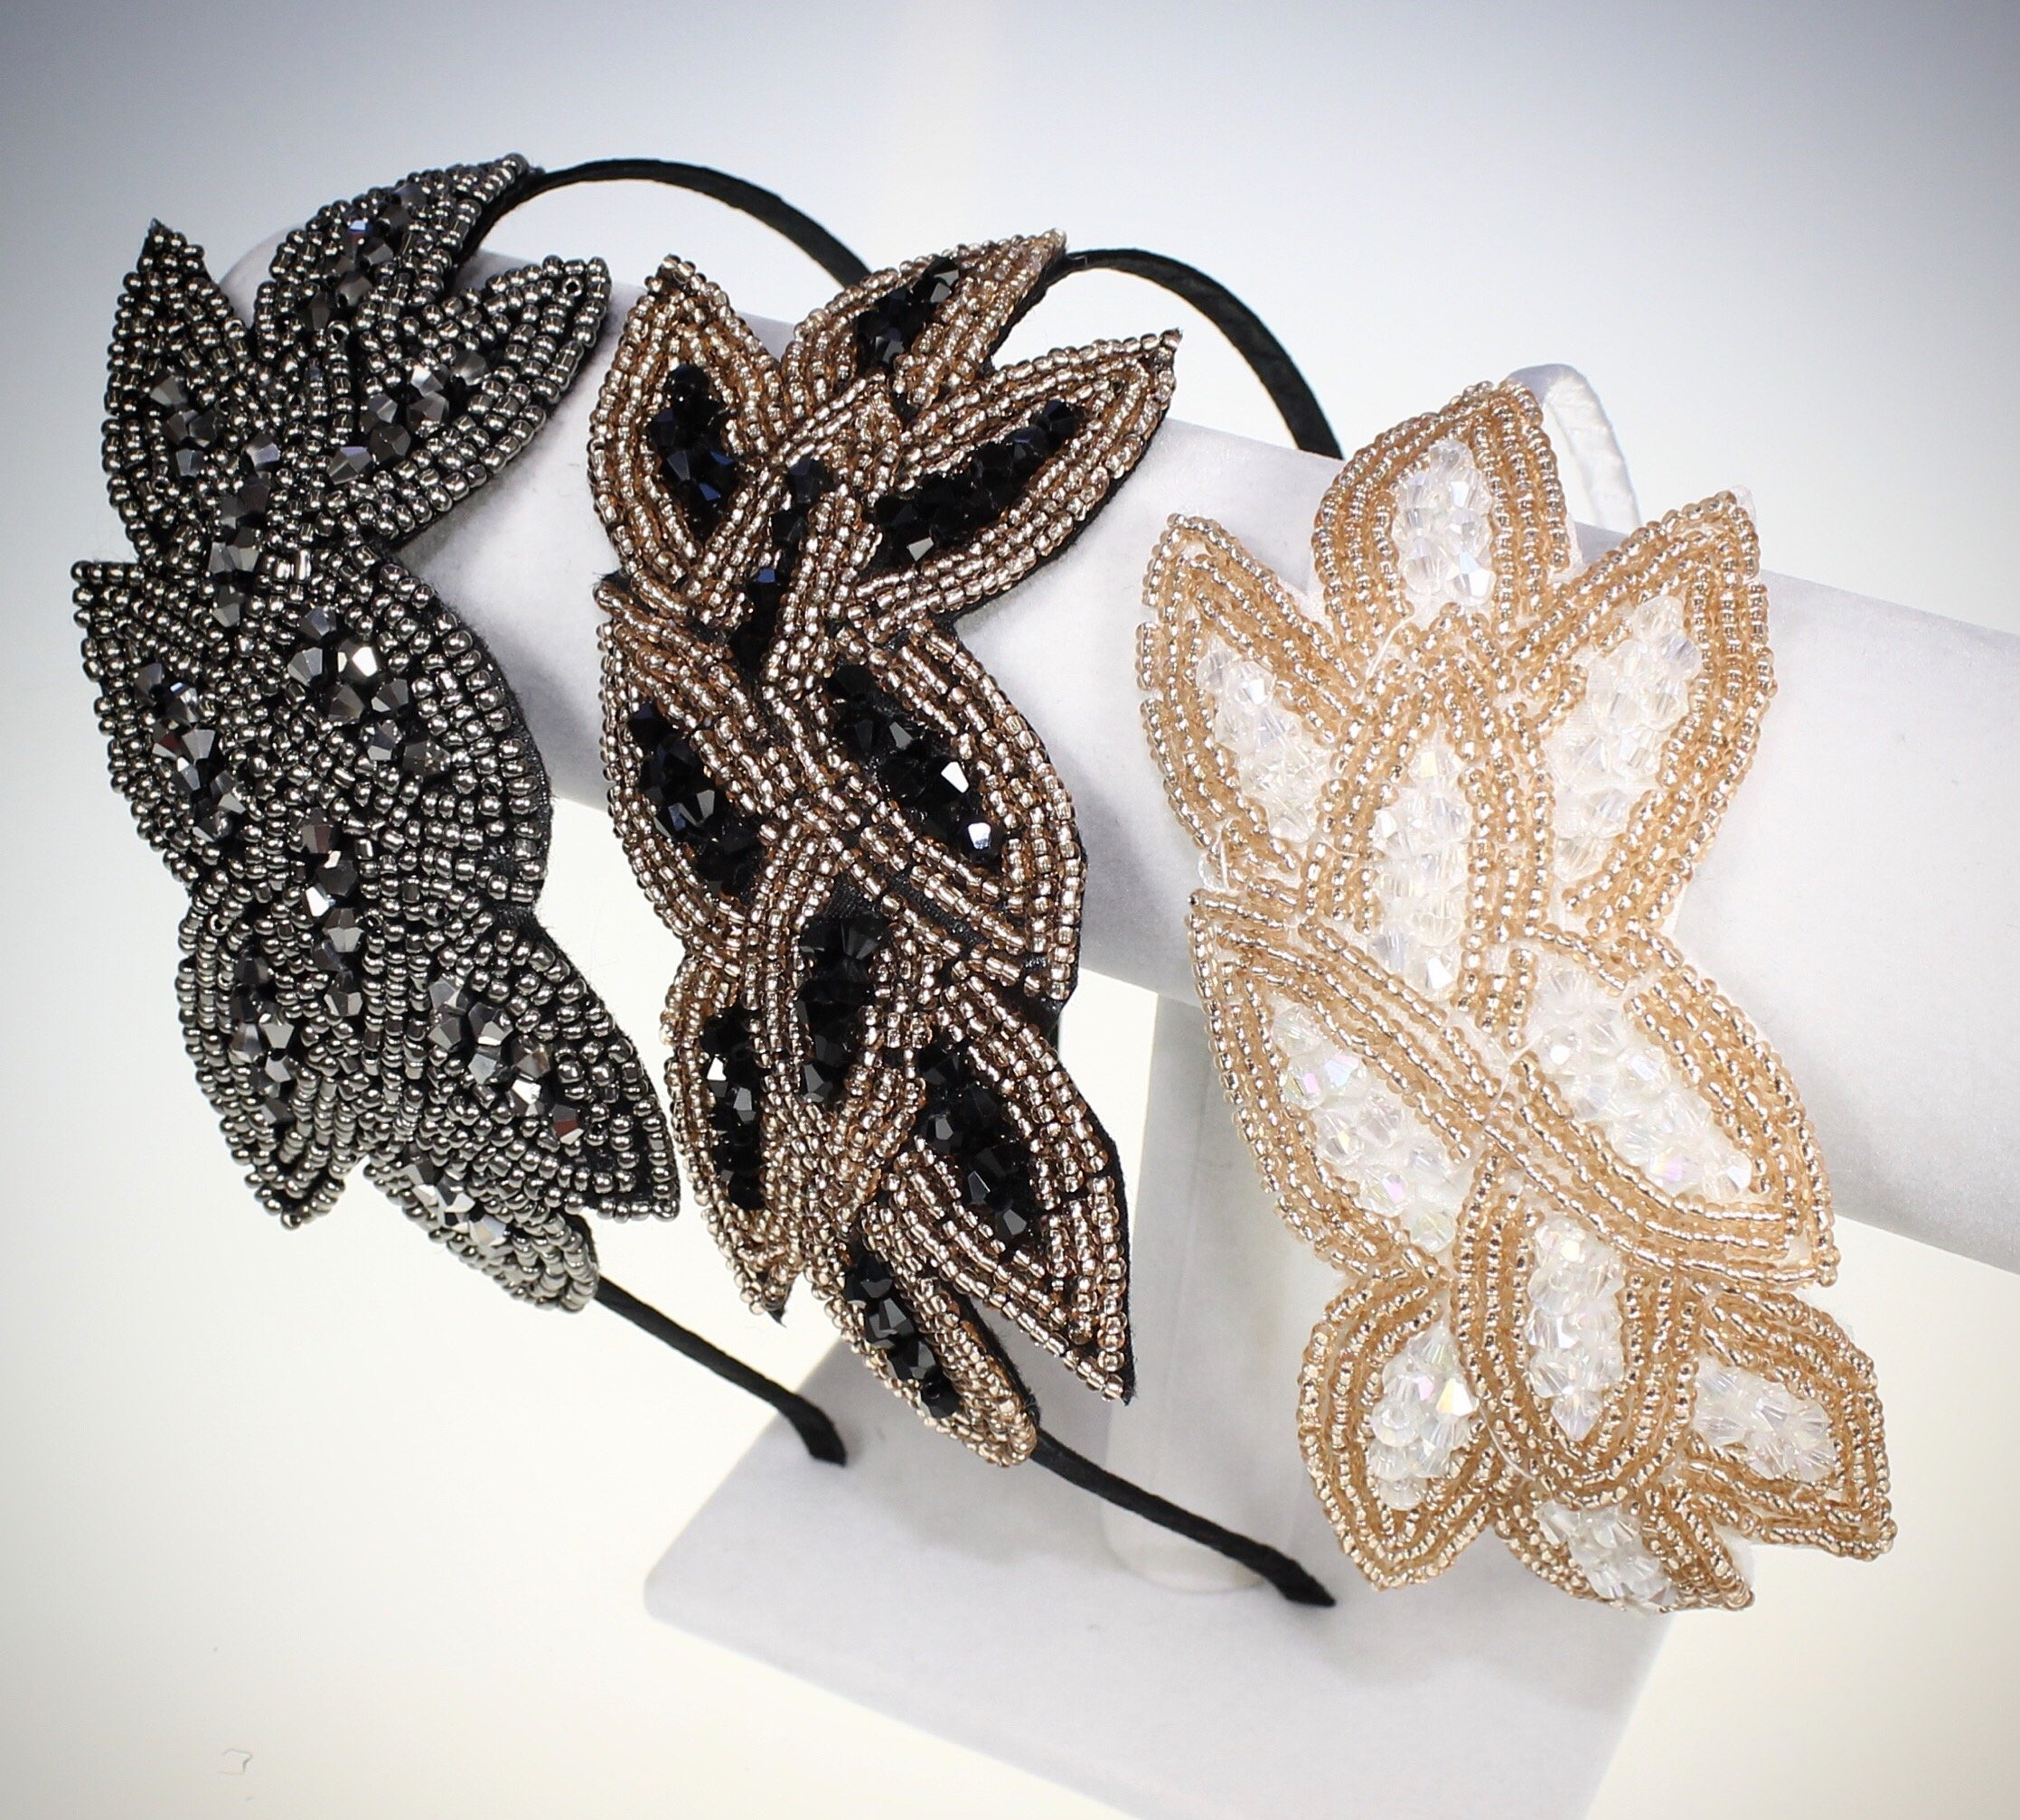 Beaded Flapper Headband Leaf Vintage 1920s Inspired Hairband Hair Accessory, Grey by CB Accessories (Image #7)